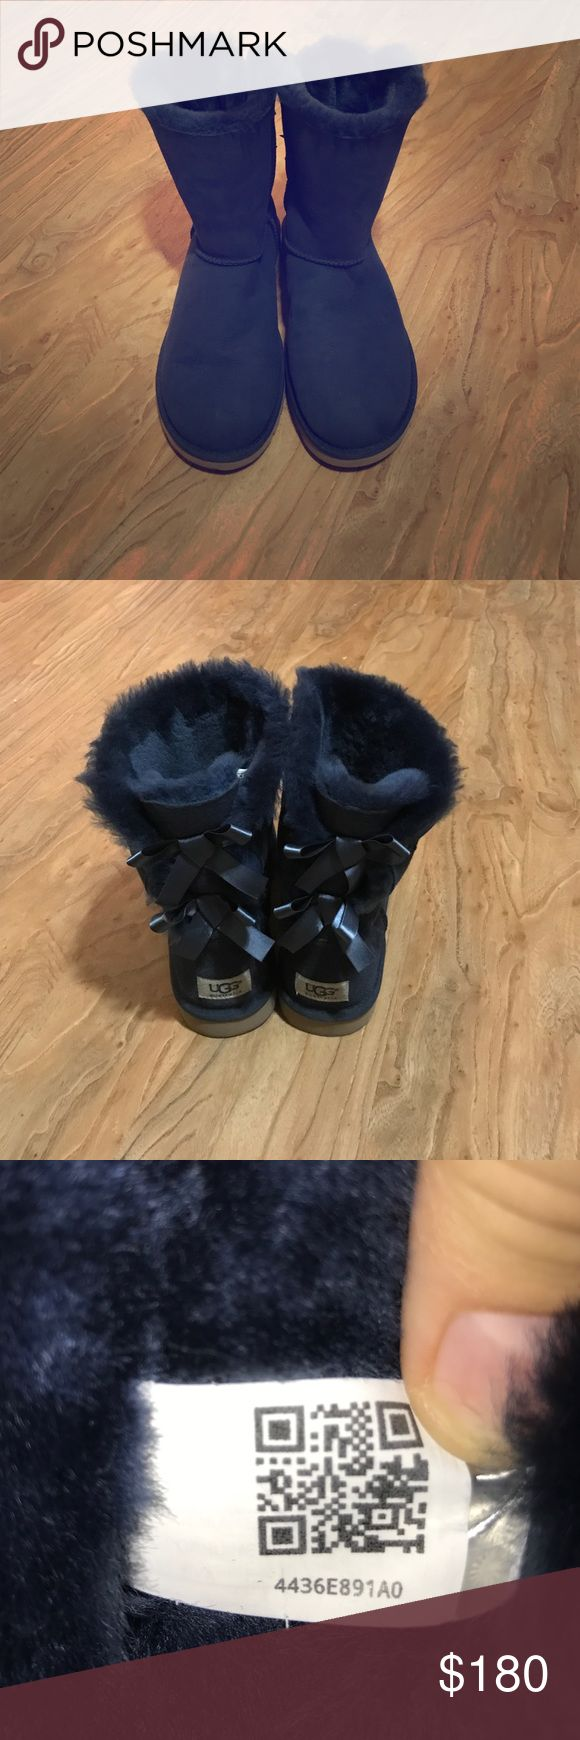 Ugg Bailey Bow Boots Authentic Ugg bailey bow boots, great condition, they just didn't fit me, they are a size 9, I don't have the box, I bought the shoes from someone on this app UGG Shoes Winter & Rain Boots